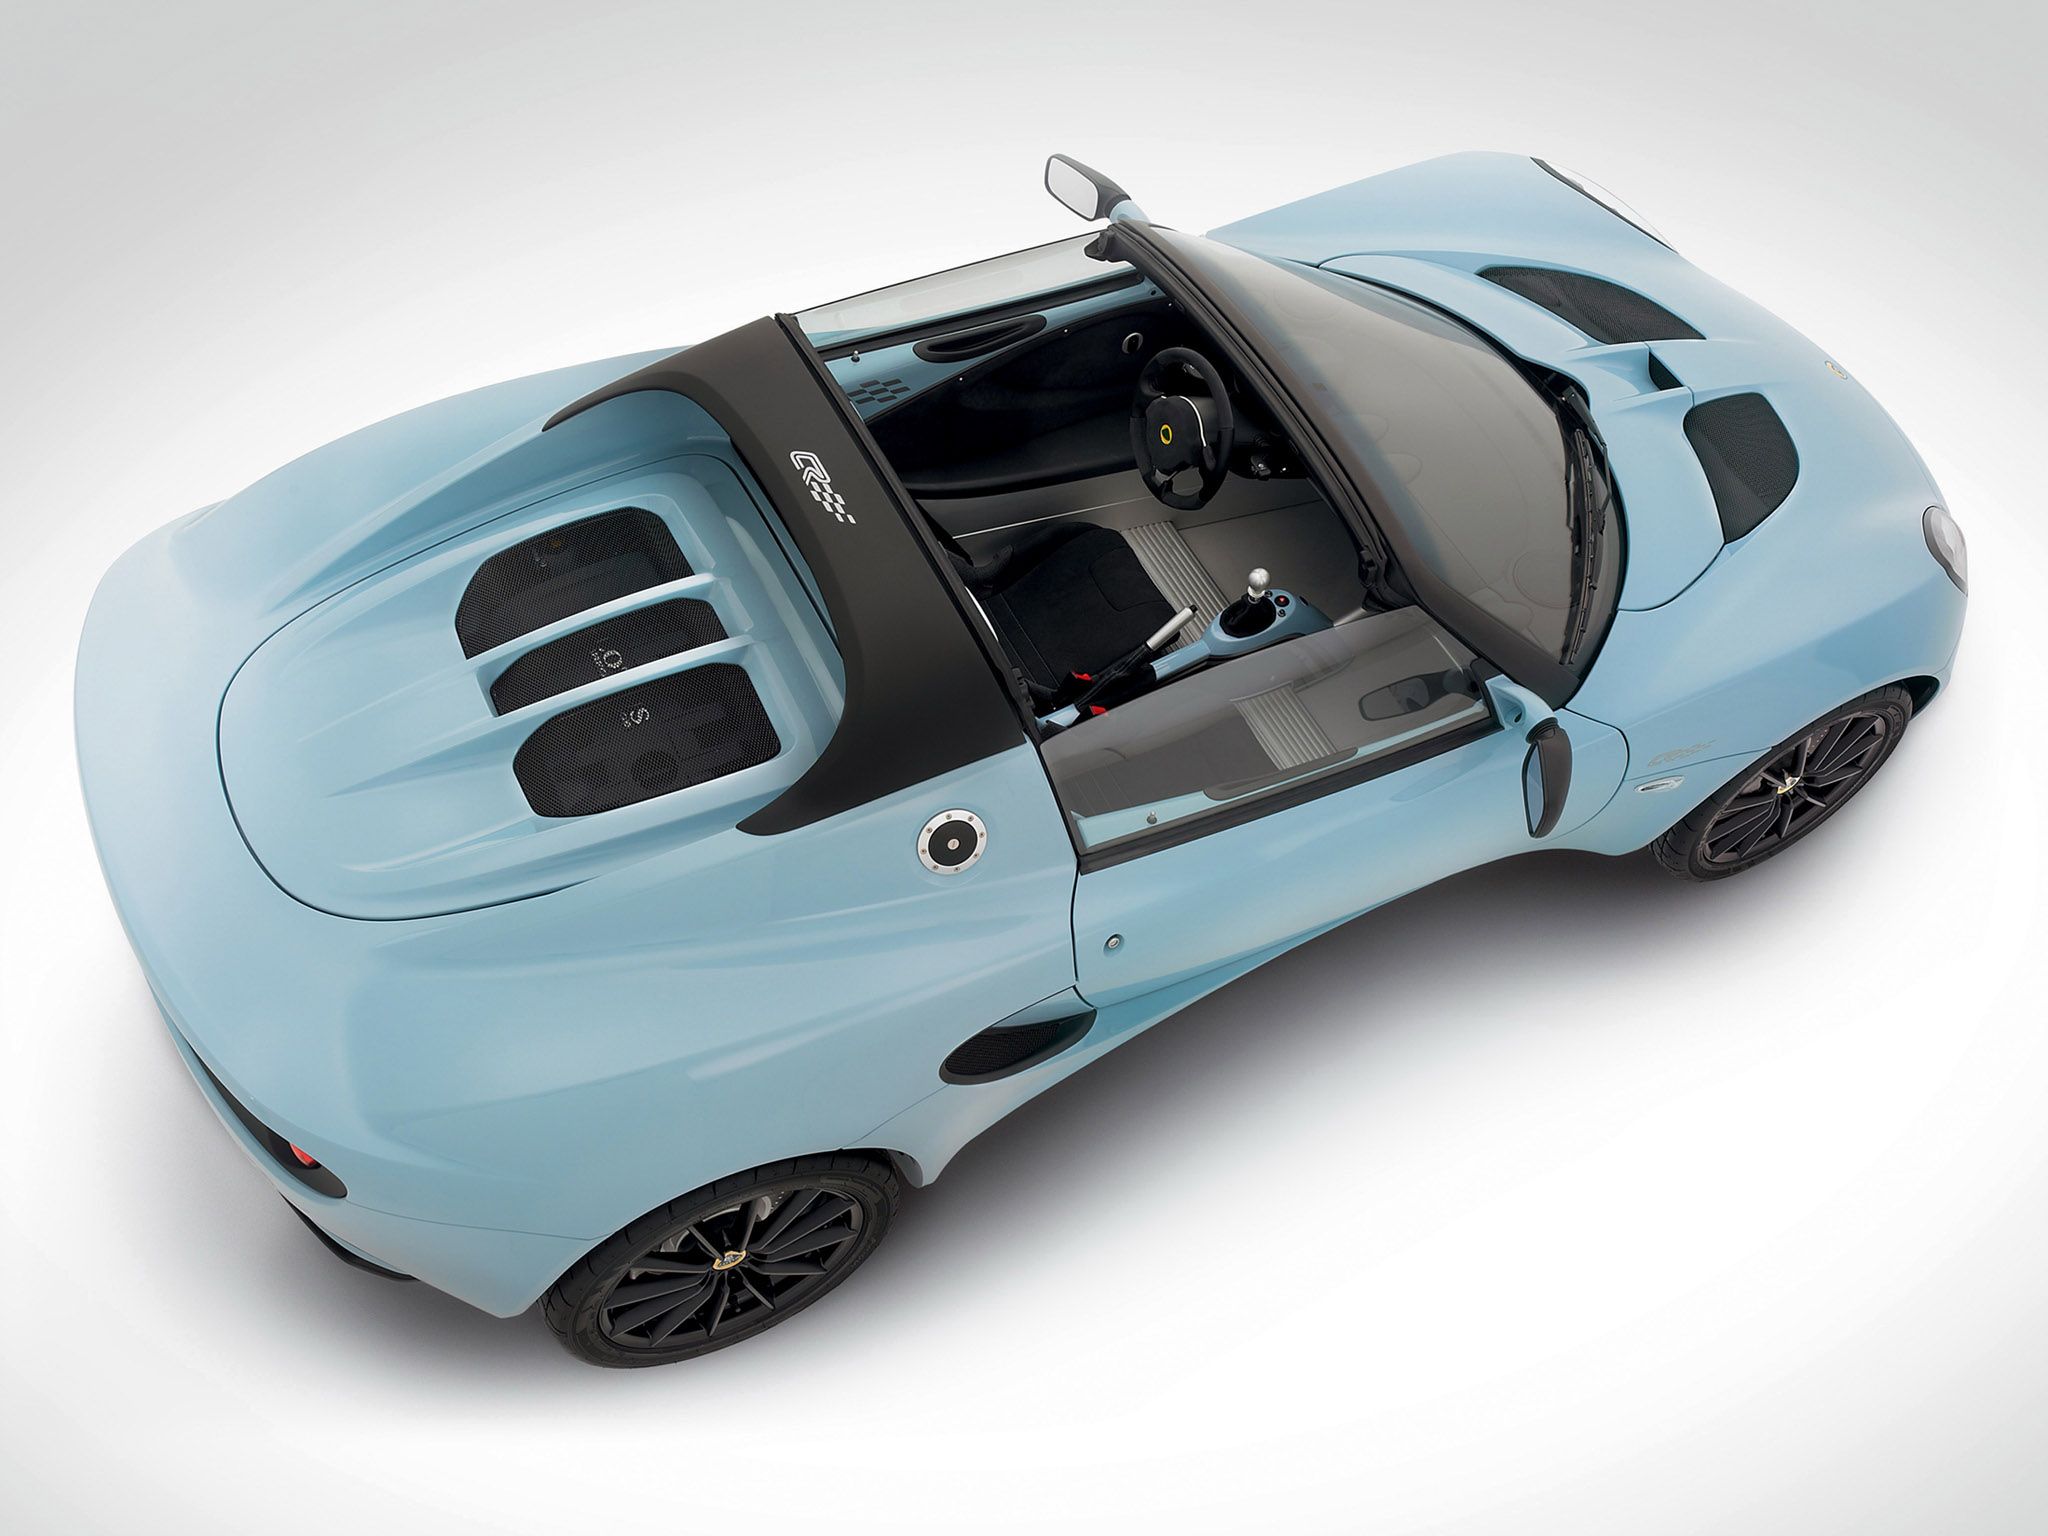 lotus elise club racer 2011 lotus elise club racer 2011 photo 04 car in pictures car photo. Black Bedroom Furniture Sets. Home Design Ideas